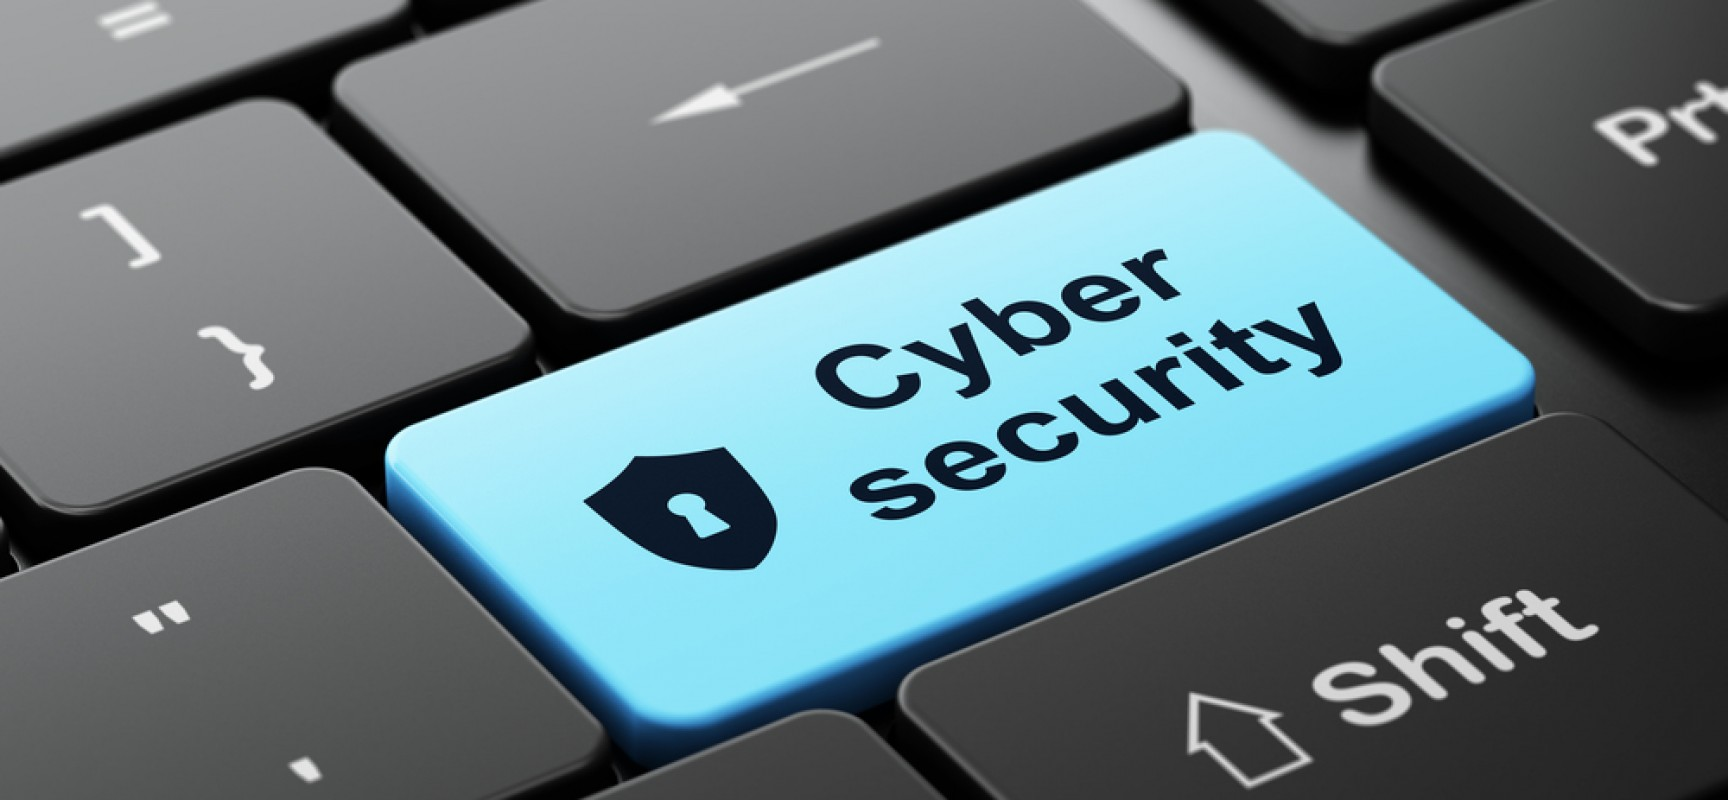 Cyber security jobs make up 14% of all new UK based IT roles